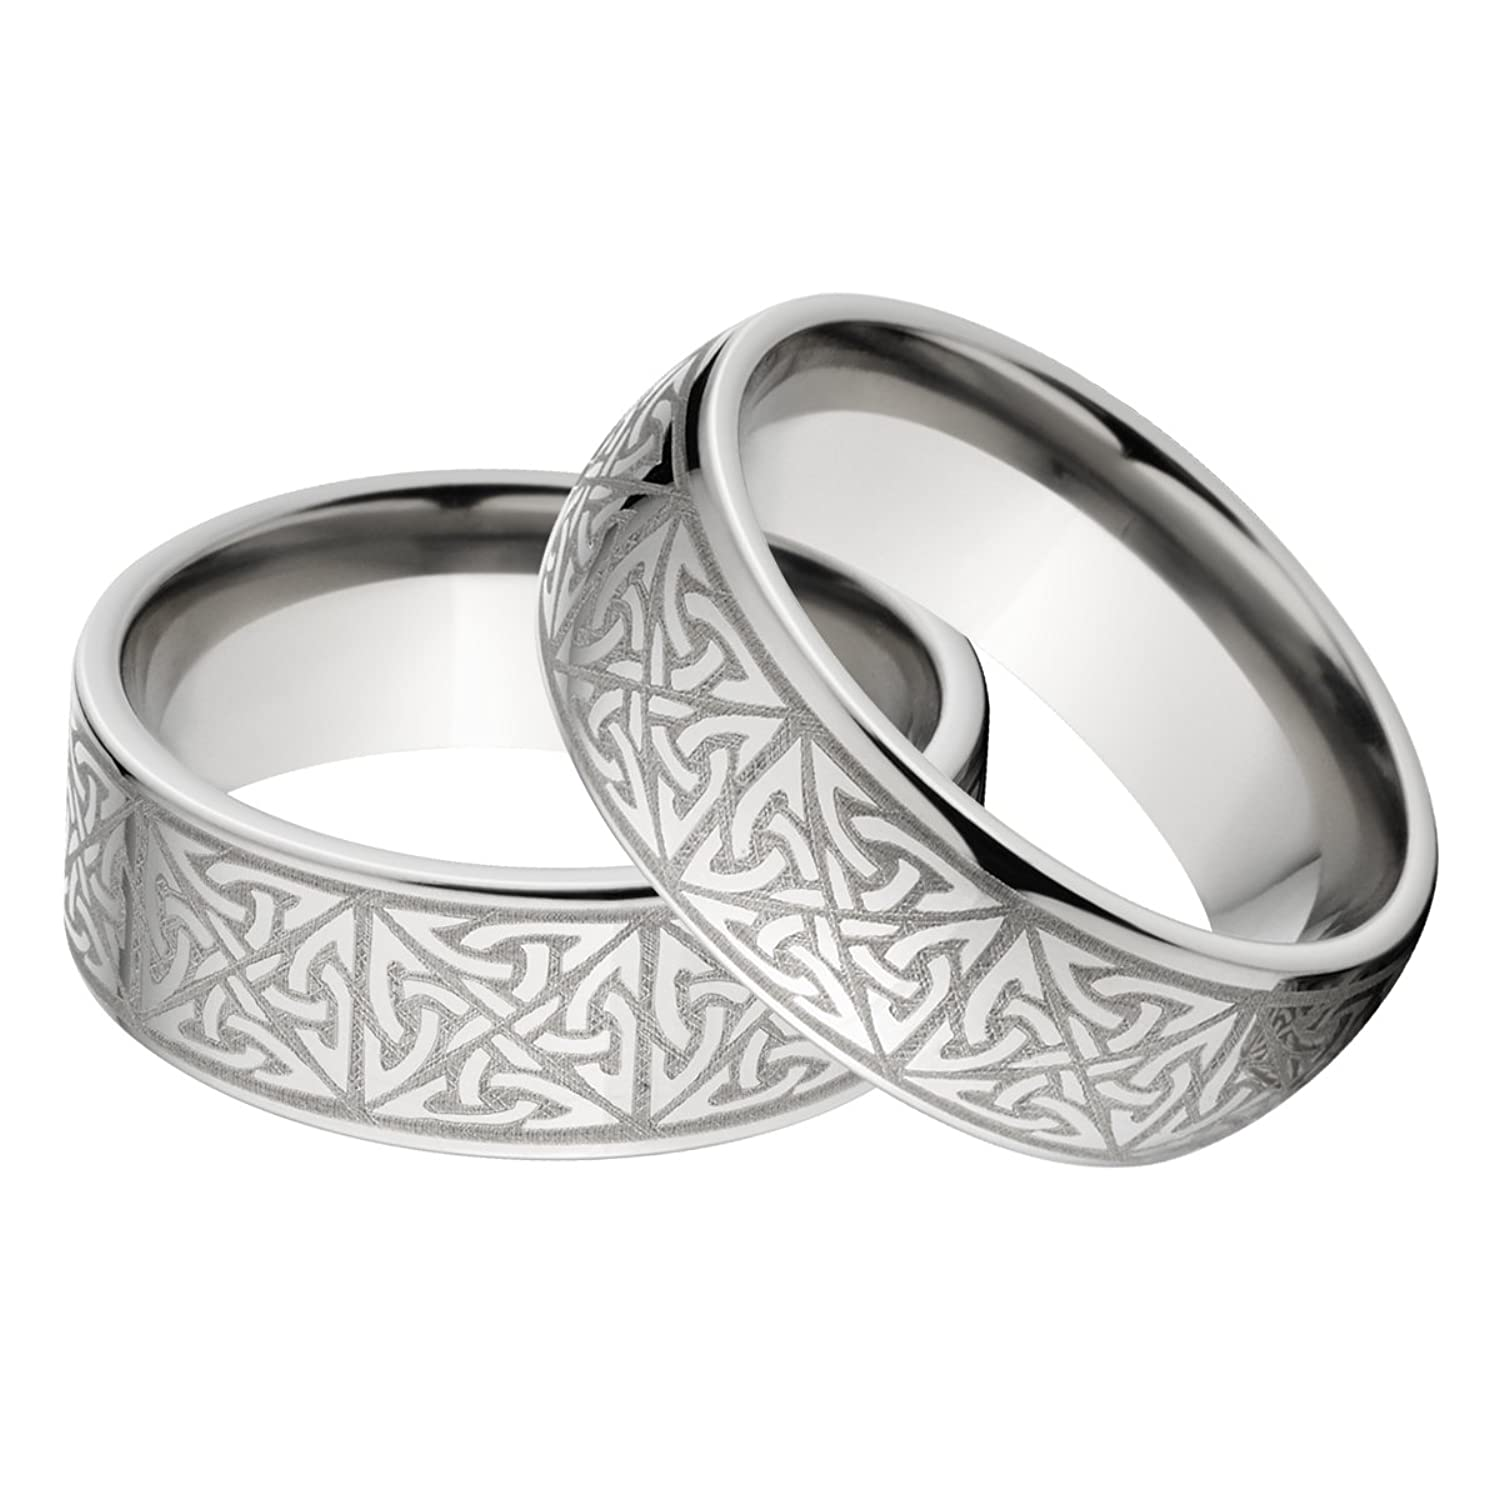 new his and hers matching celtic ring set celtic wedding ringsamazoncom - Wedding Rings Amazon